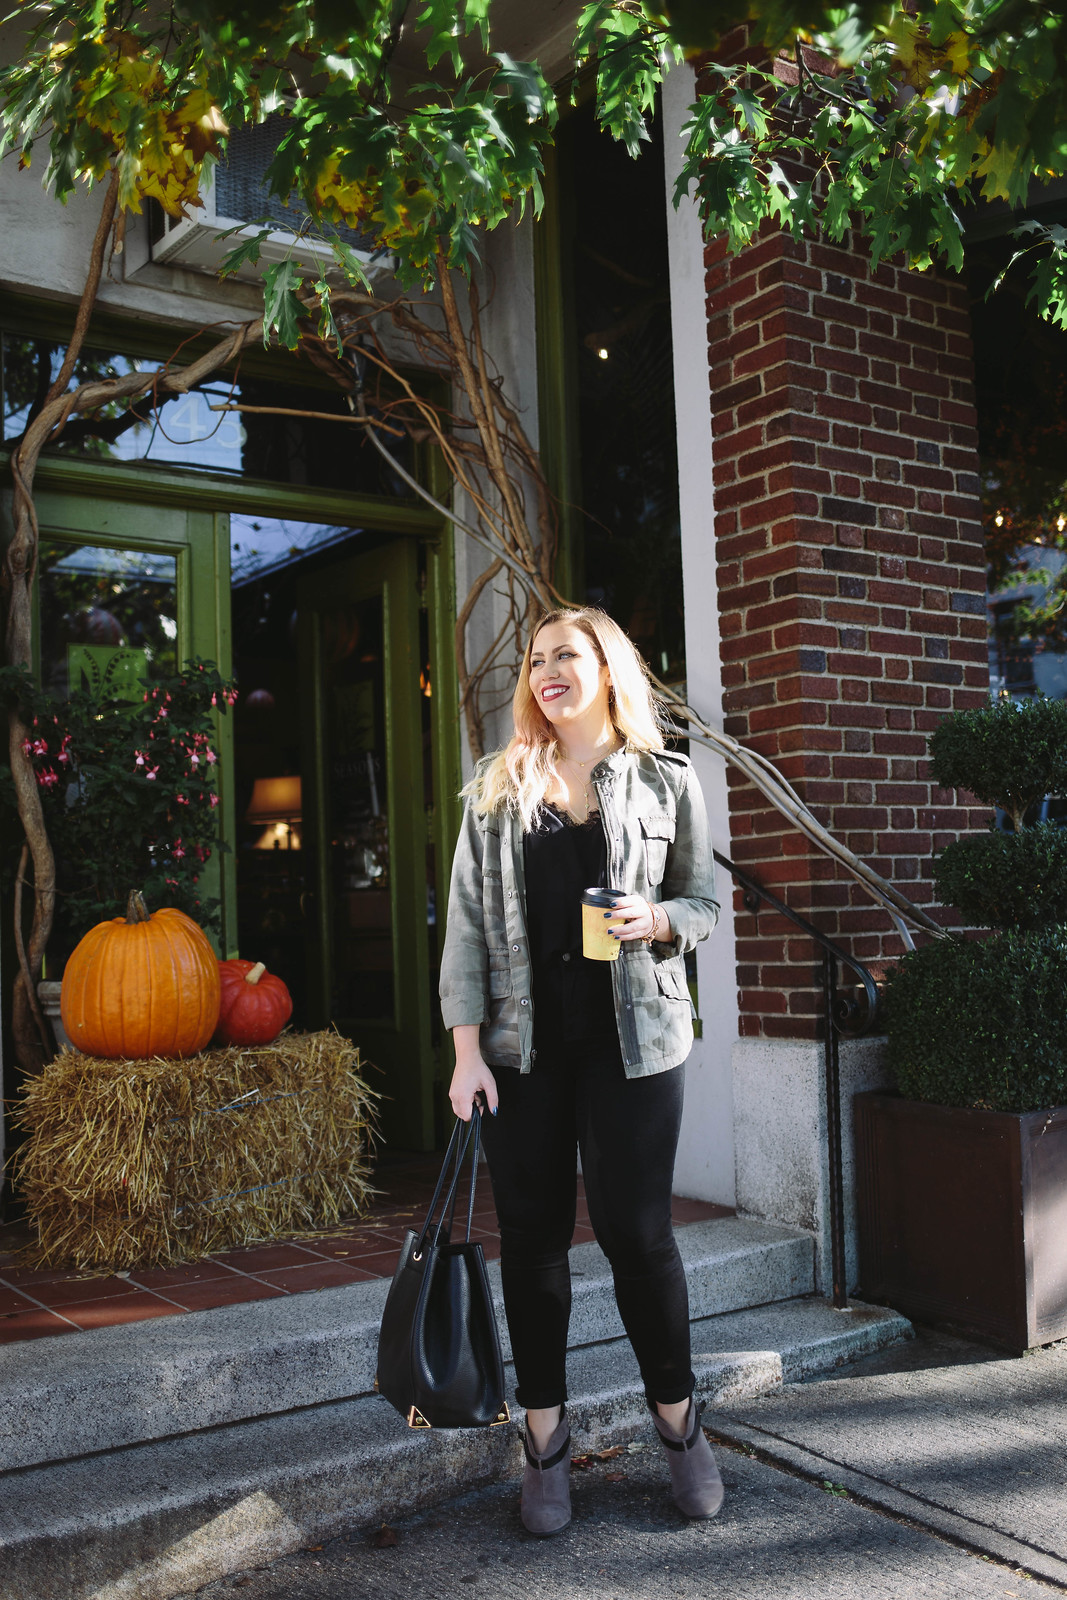 Coffee Date Outfit Fall Weather Pumpkin Haystack Camouflage Jacket Black Skinny Jeans